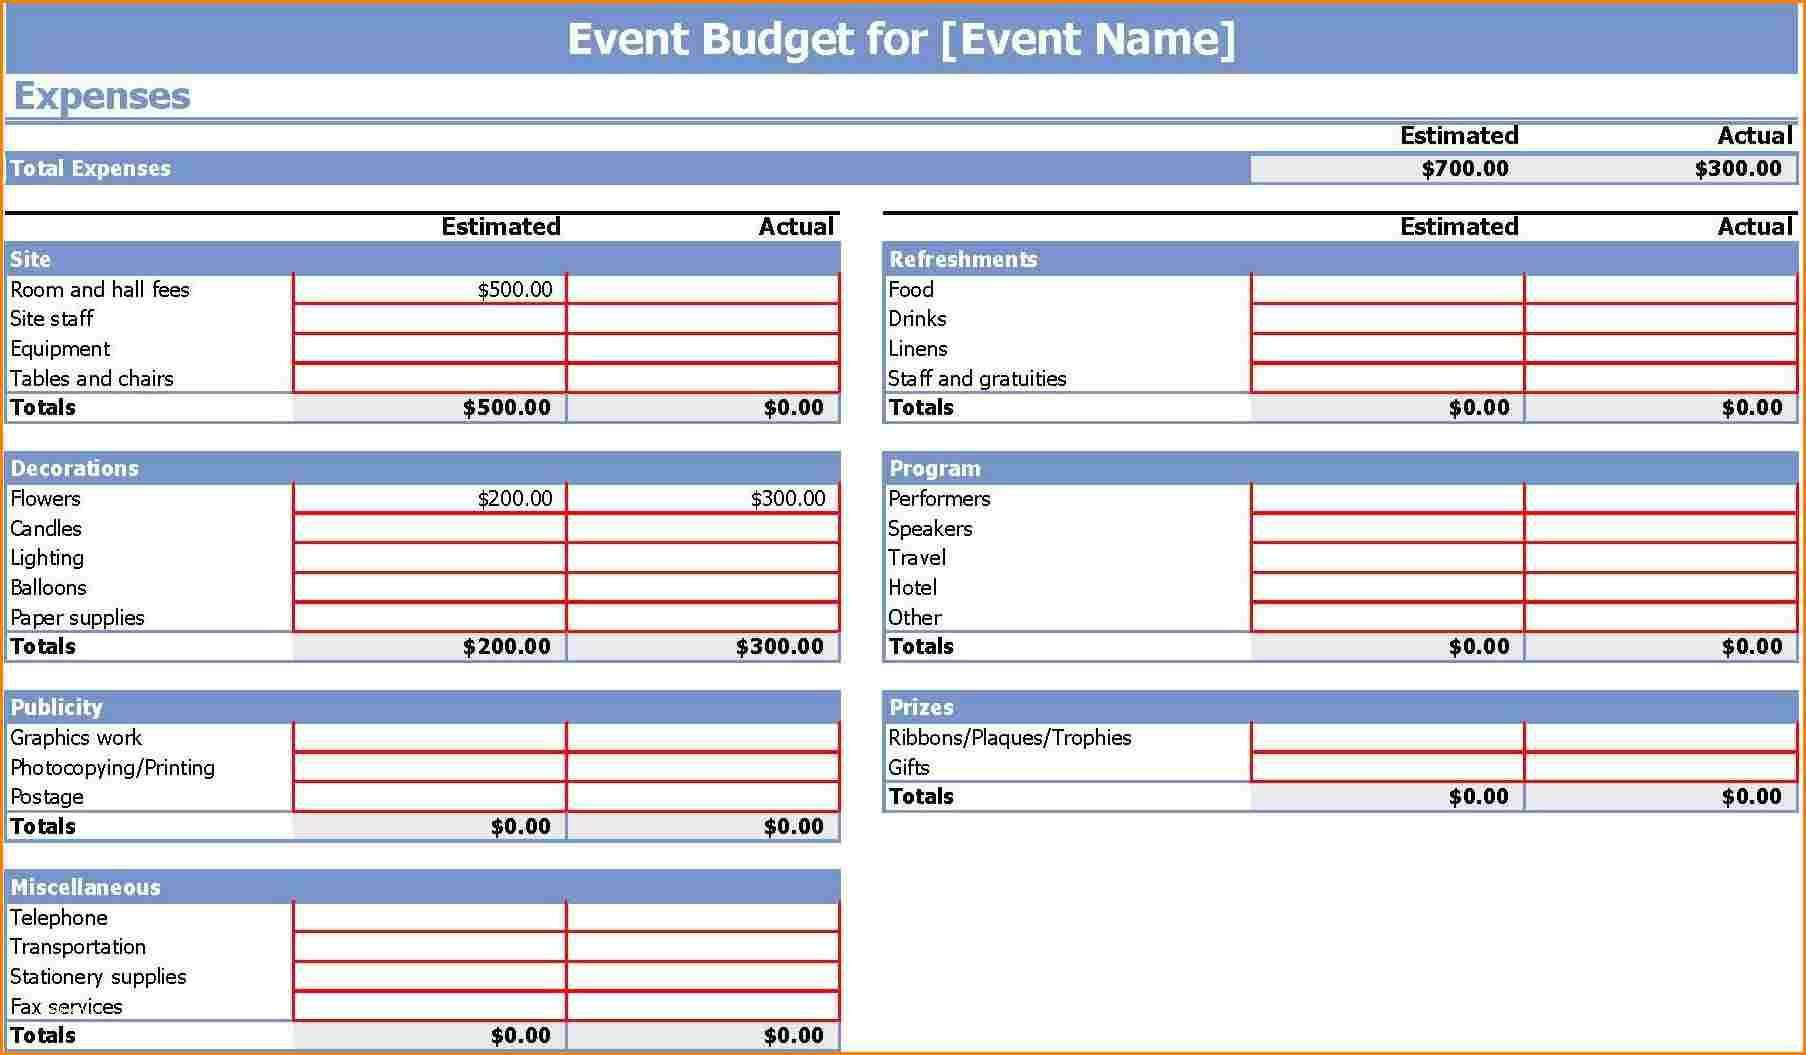 Wedding Budget Checklist Pdf New Wedding Budget Checklist Pdf Planning A Wedding Checklist Wedding Event Budget Template Event Budget Event Planning Budget